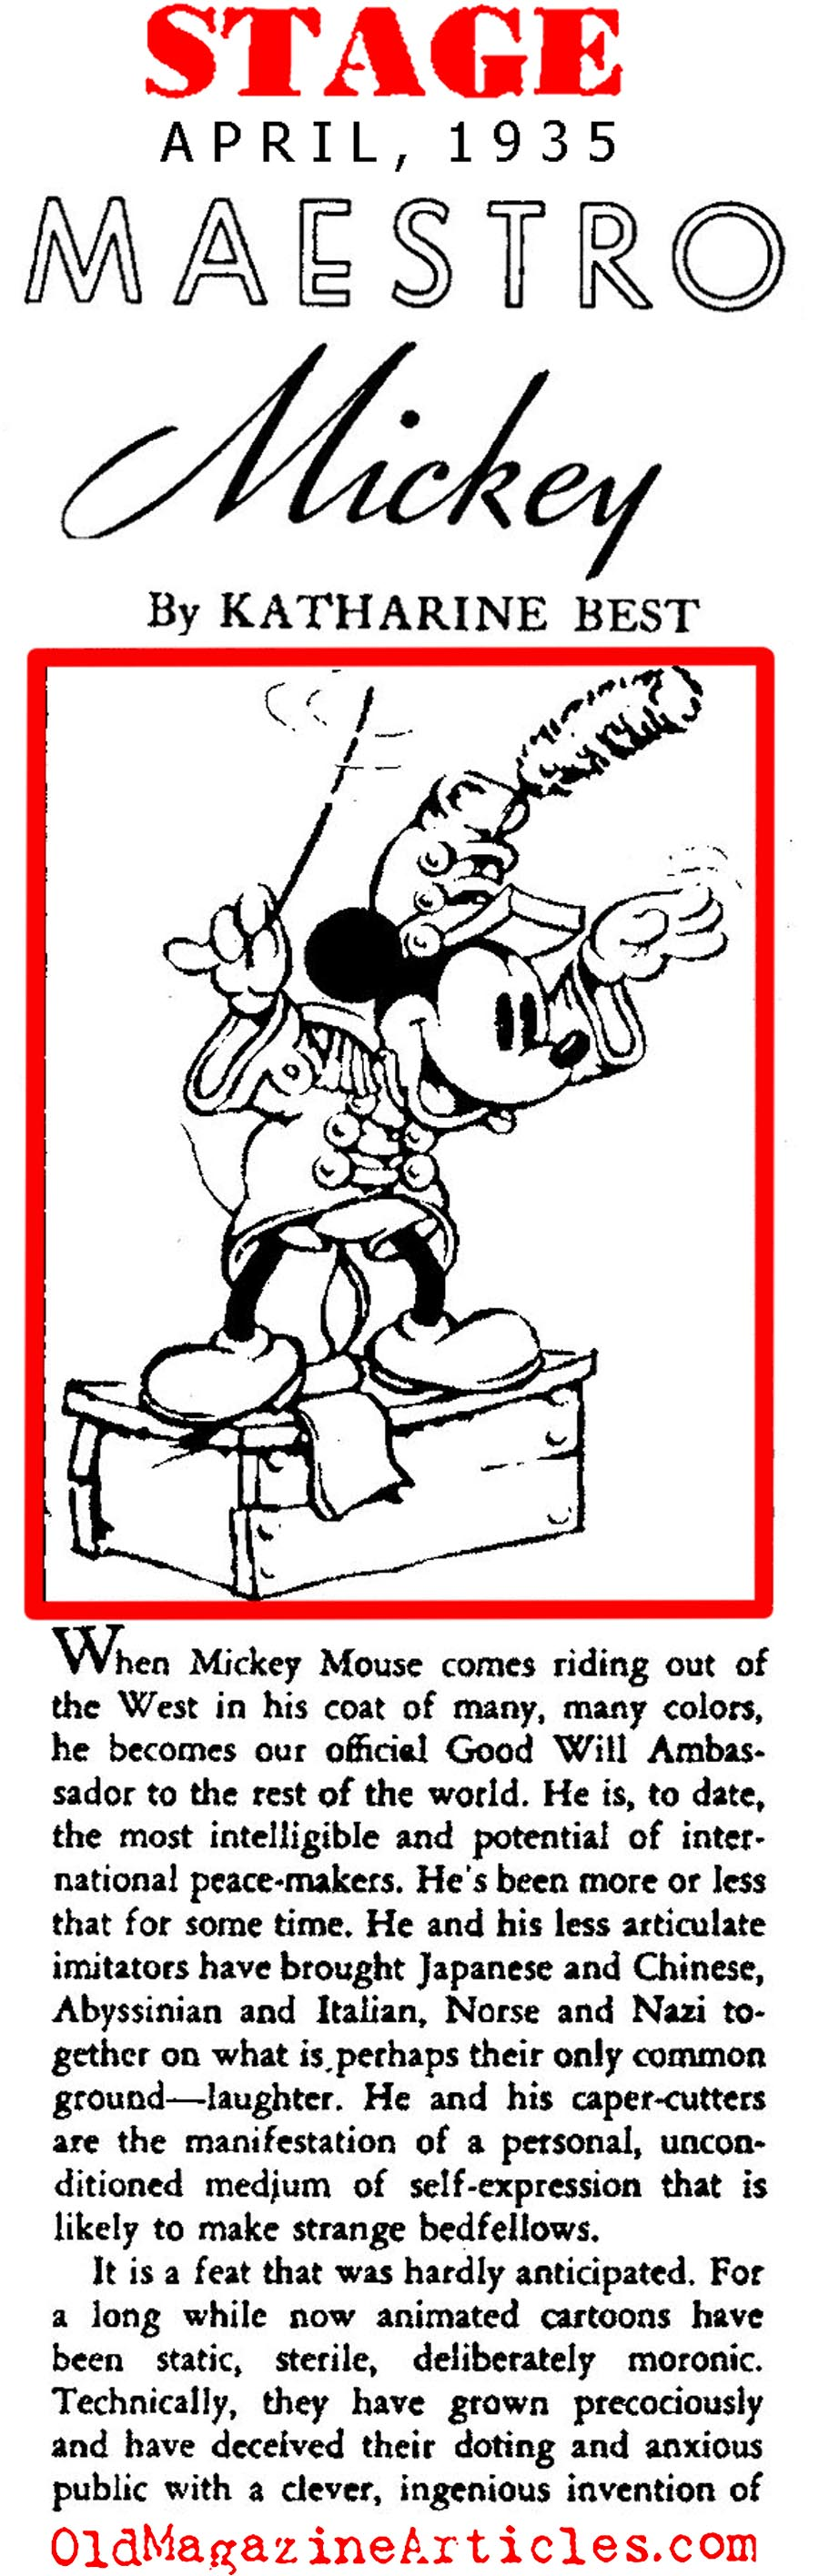 Mickey Mouse: Goodwill Ambassador (Stage Magazine, 1935)